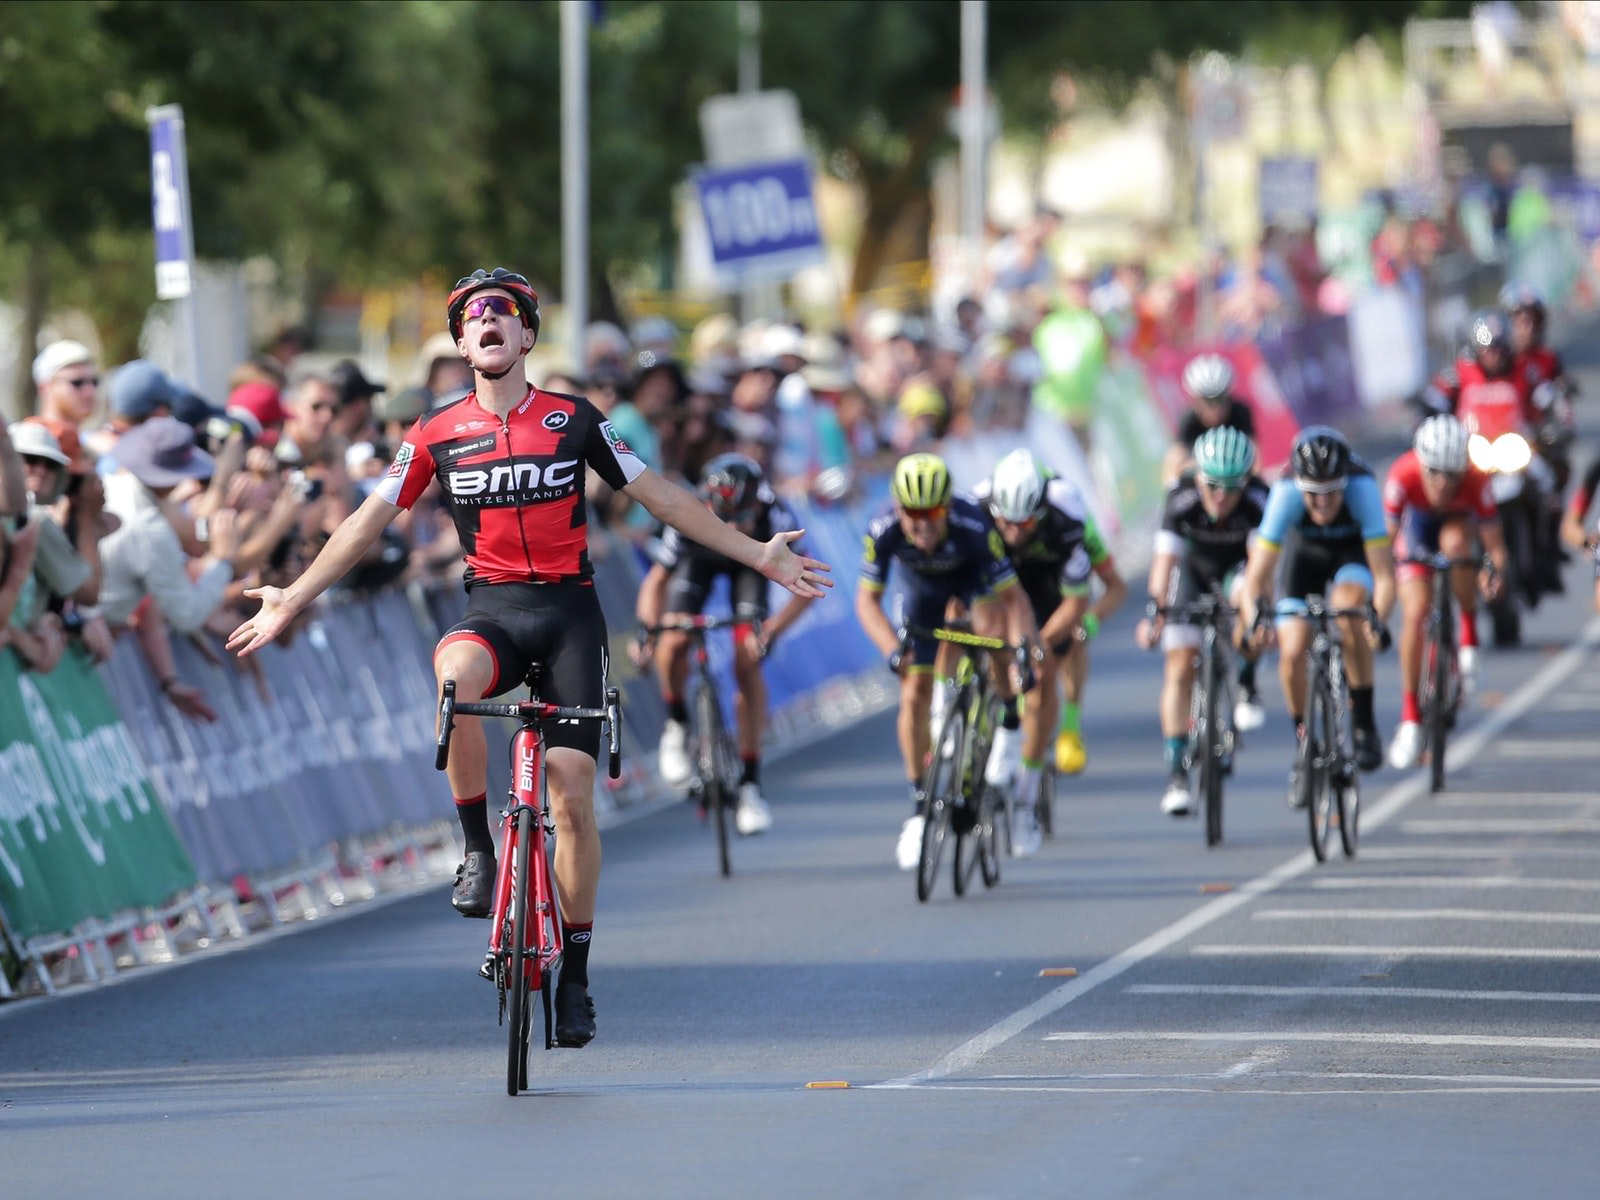 Miles Scoton BMC Celebrates his national title win